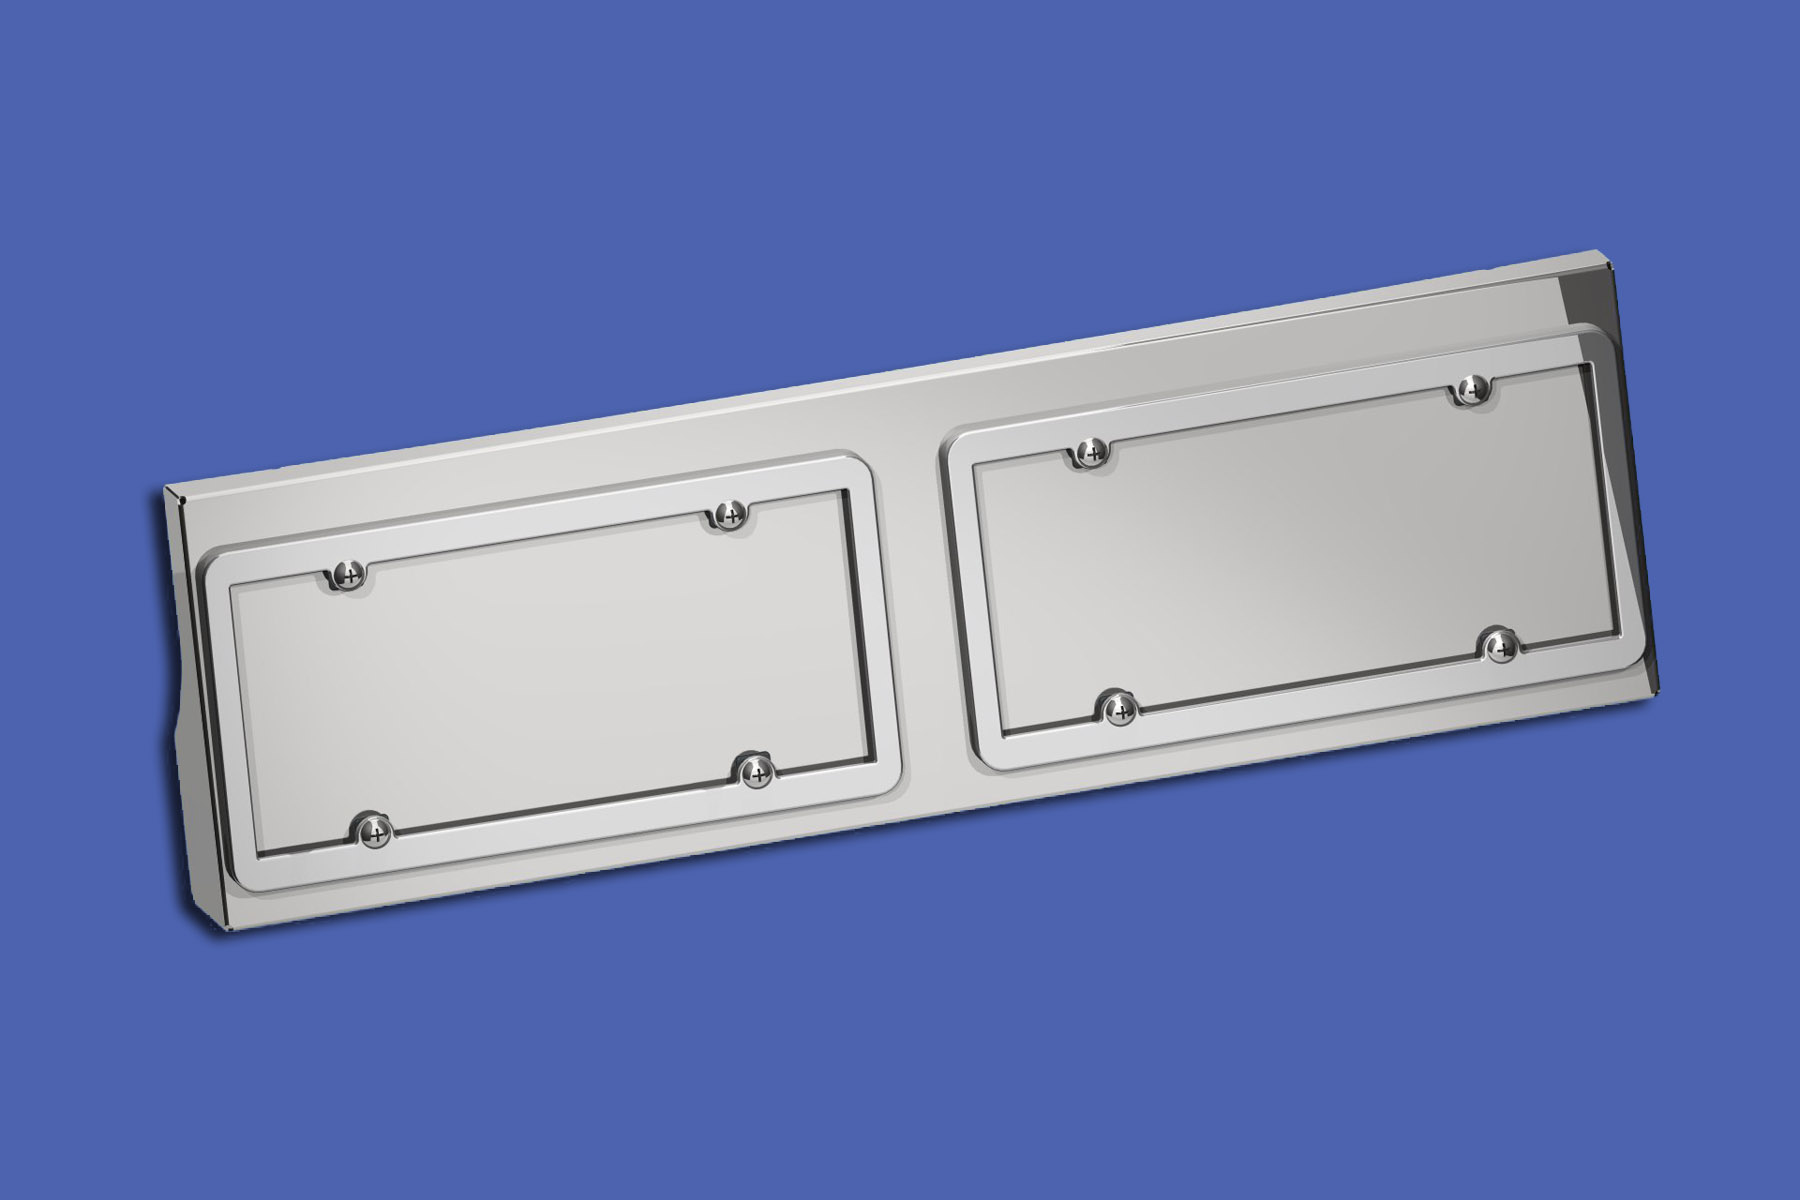 T680 Double License Plate Holder image